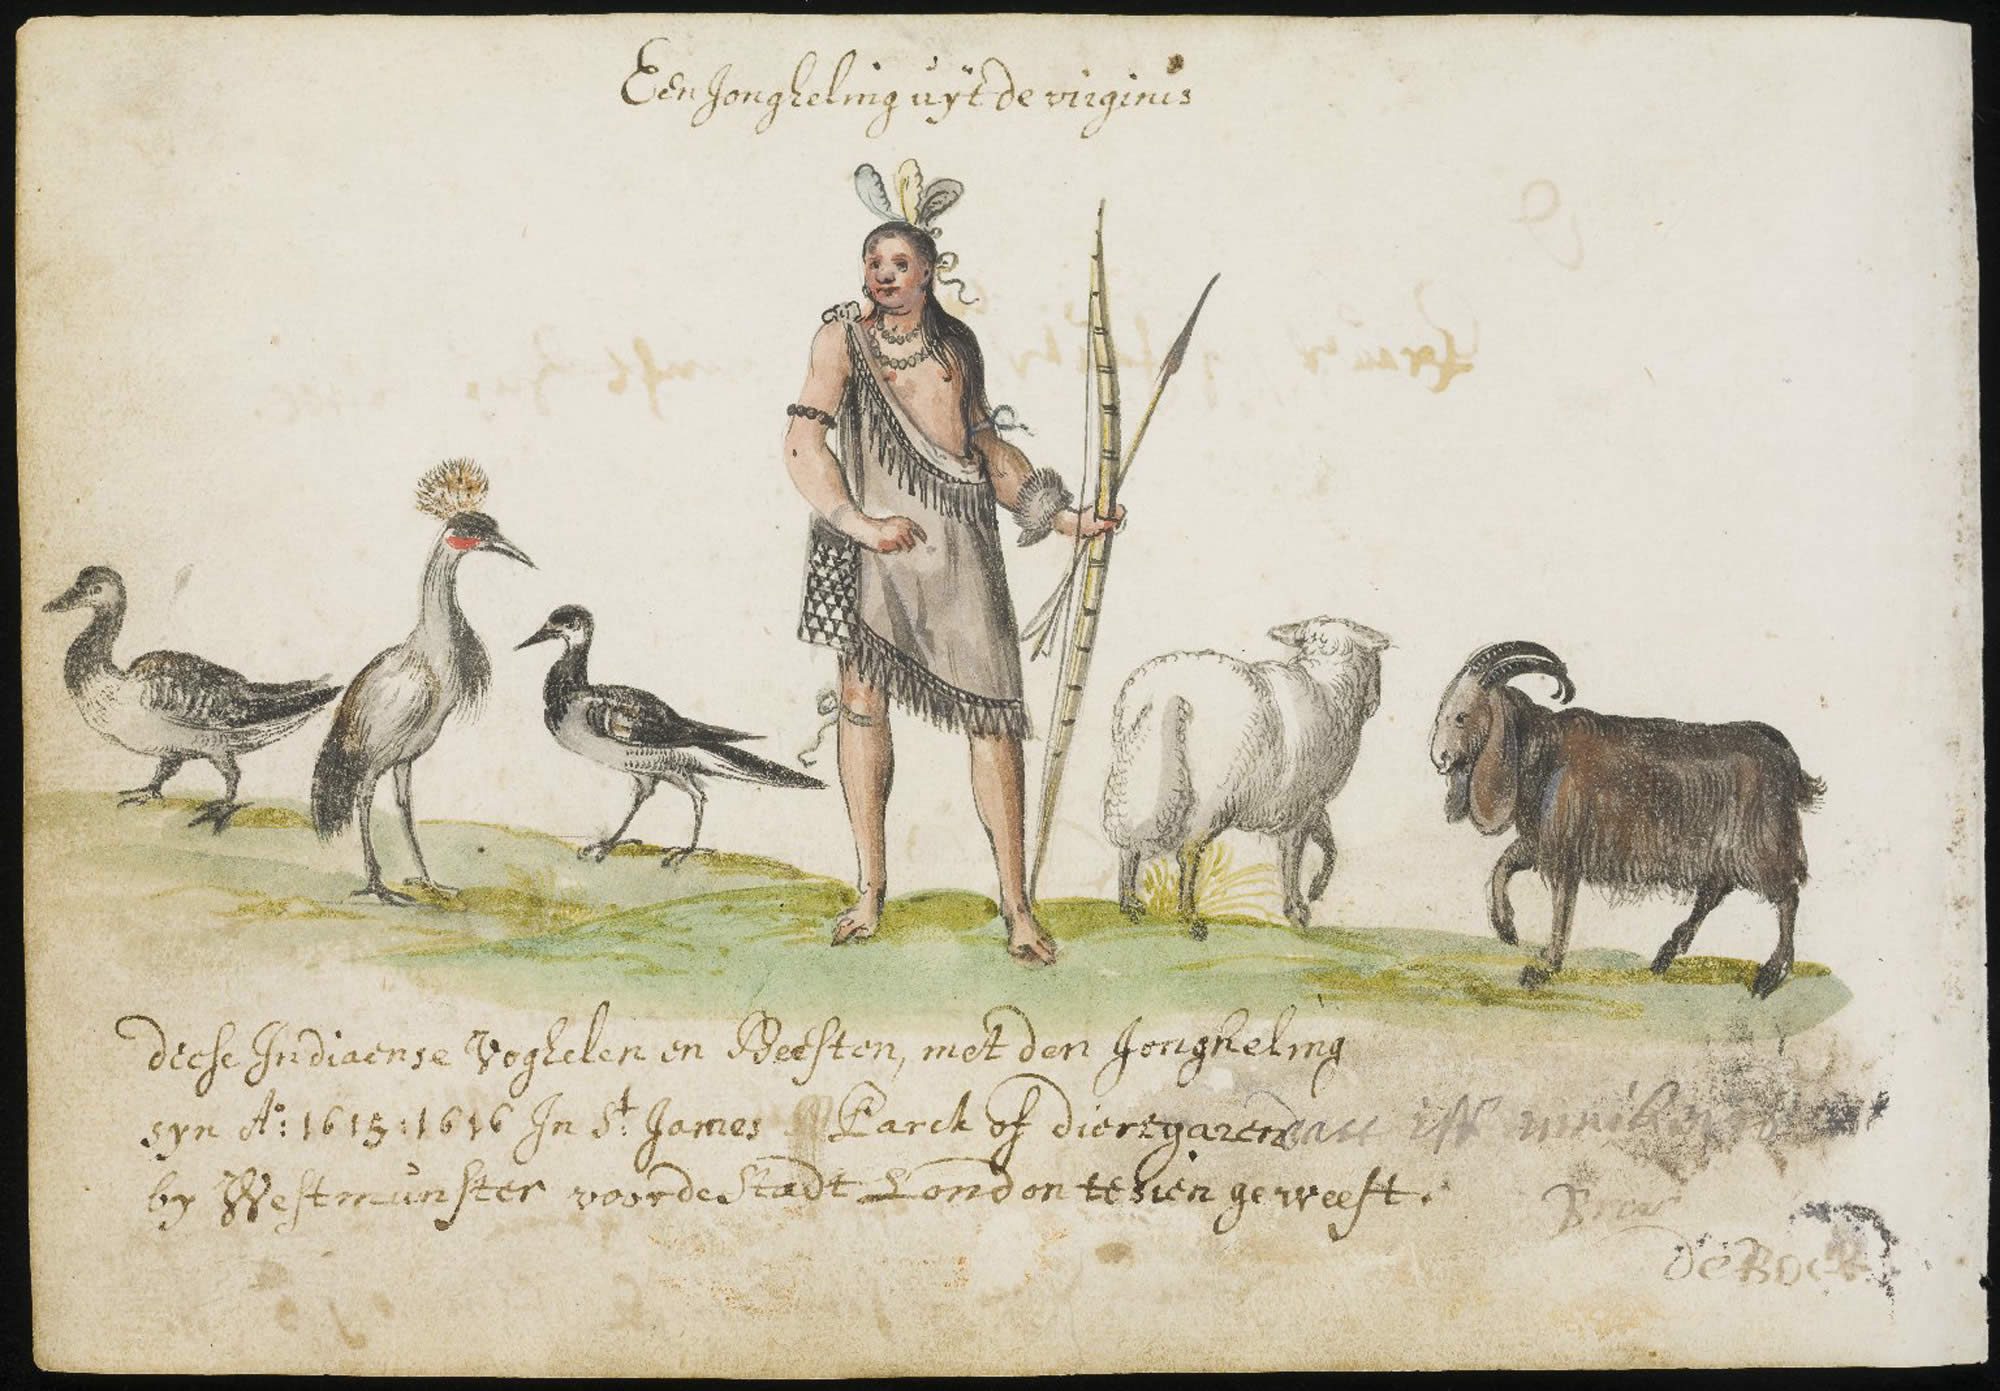 Image of virginian indian